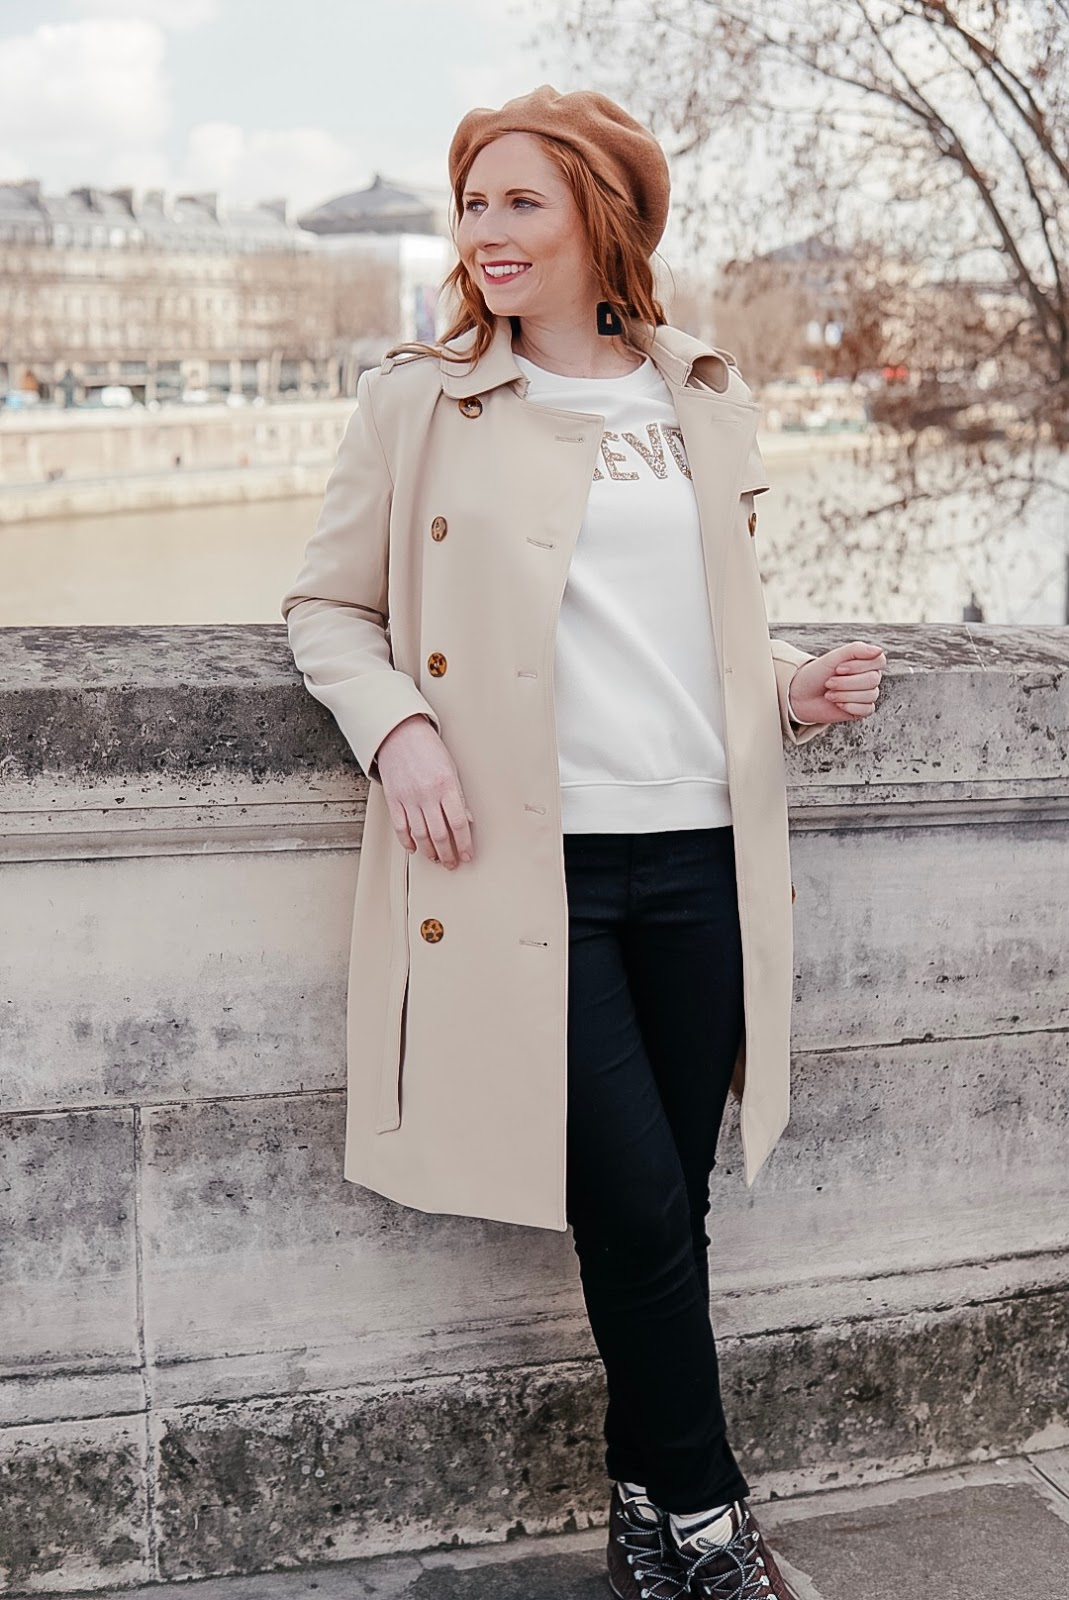 tampa blogger amanda burrows of affordable by amanda wears a tan trench coat in paris, france.